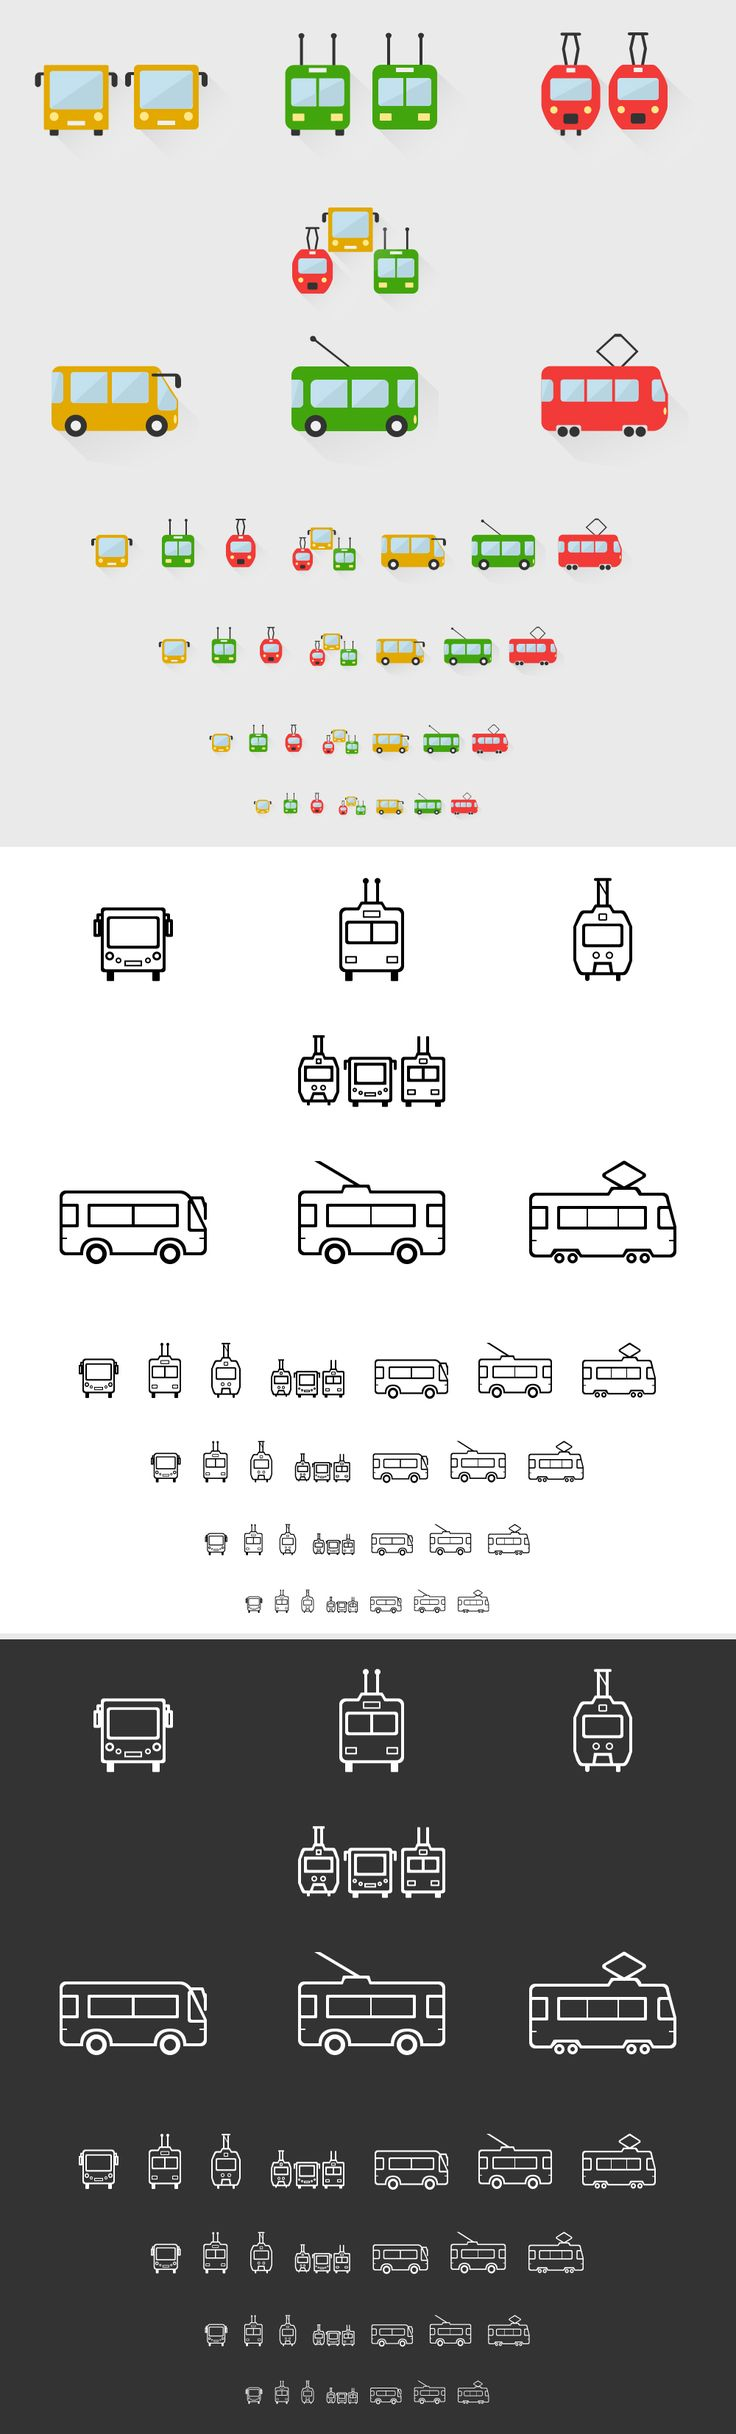 Transport icons on Behance